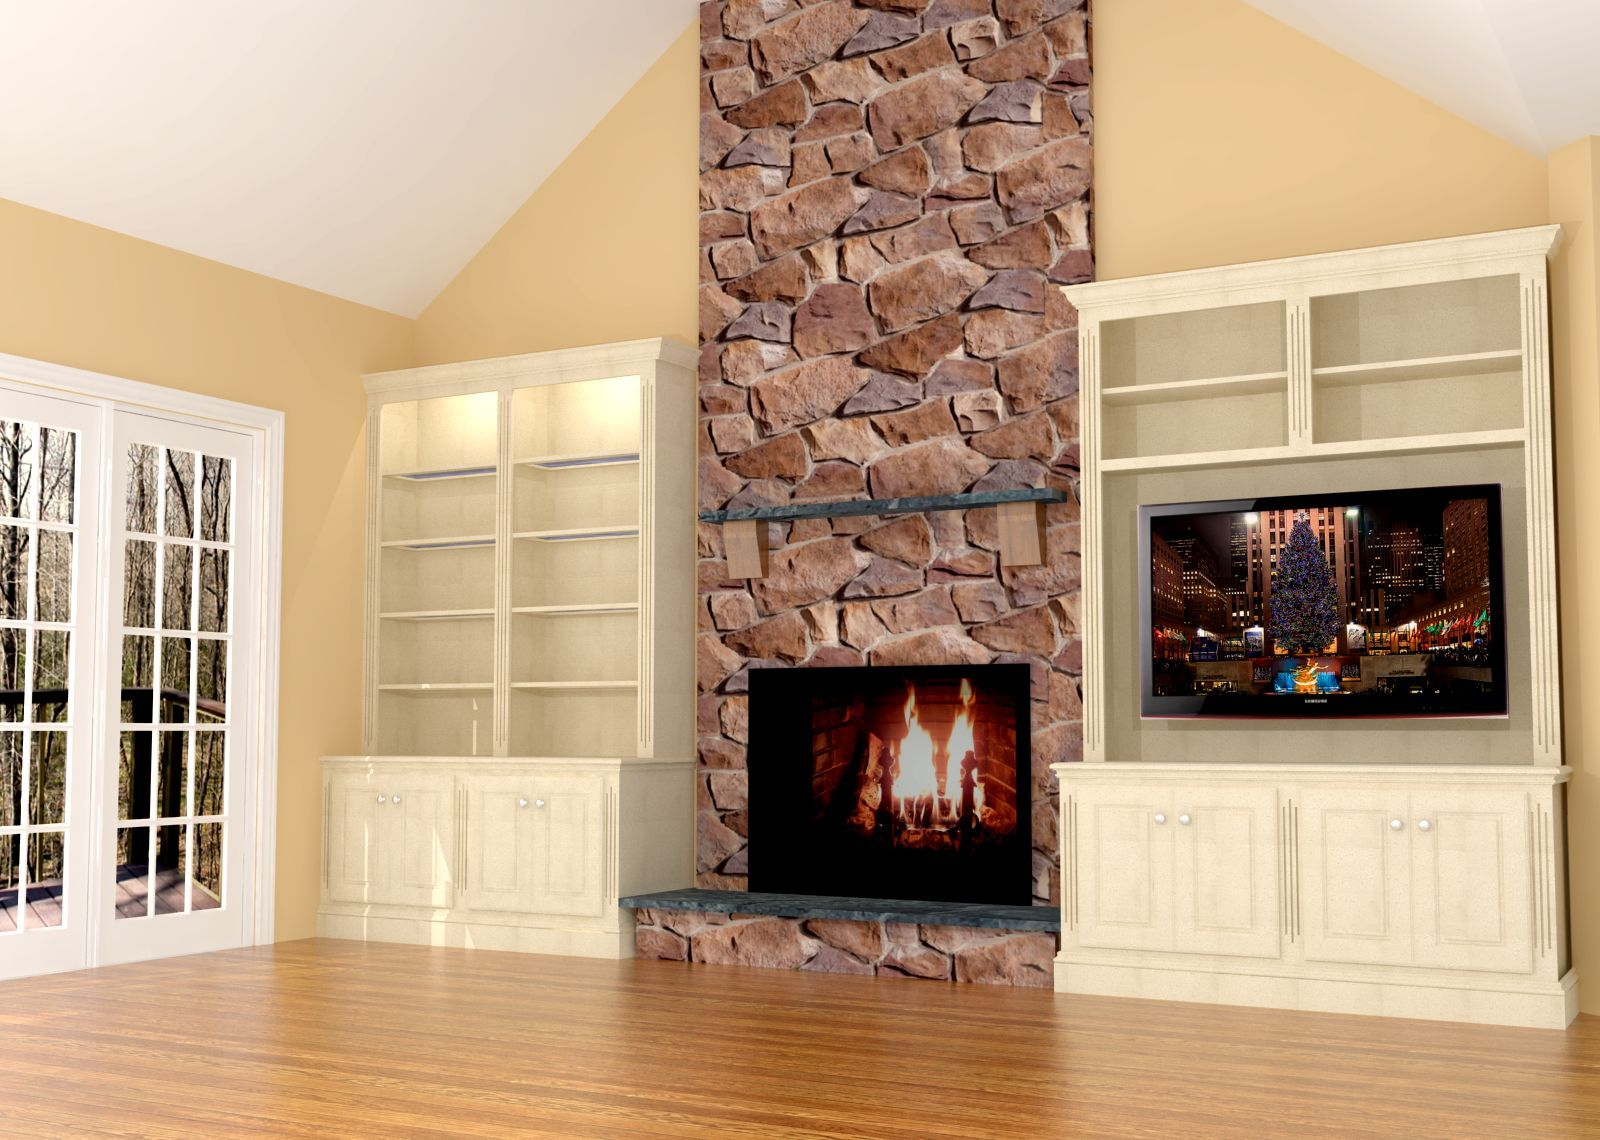 Fireplace wall built-ins w/LED TV | Fireplace wall, Built ins and ...